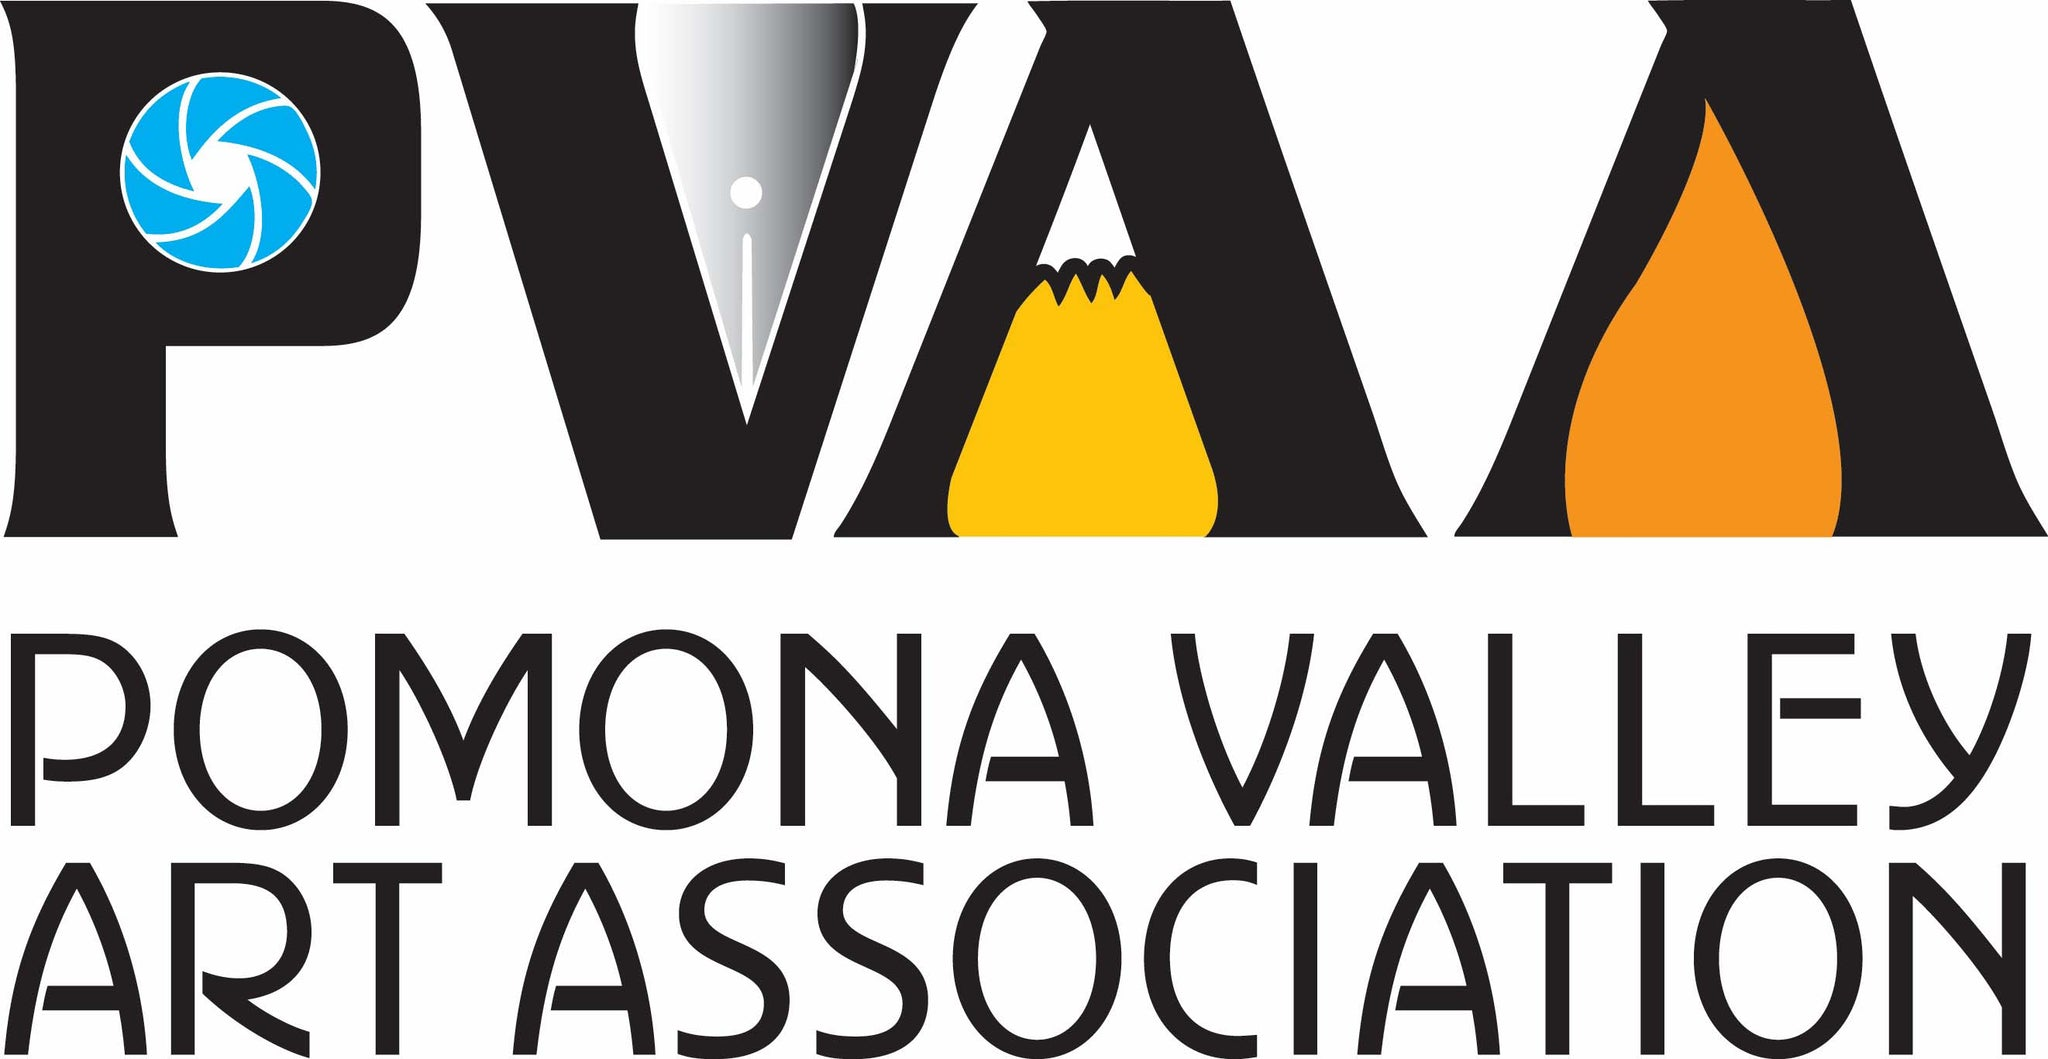 DONATION - Pomona Valley Art Association - 2021